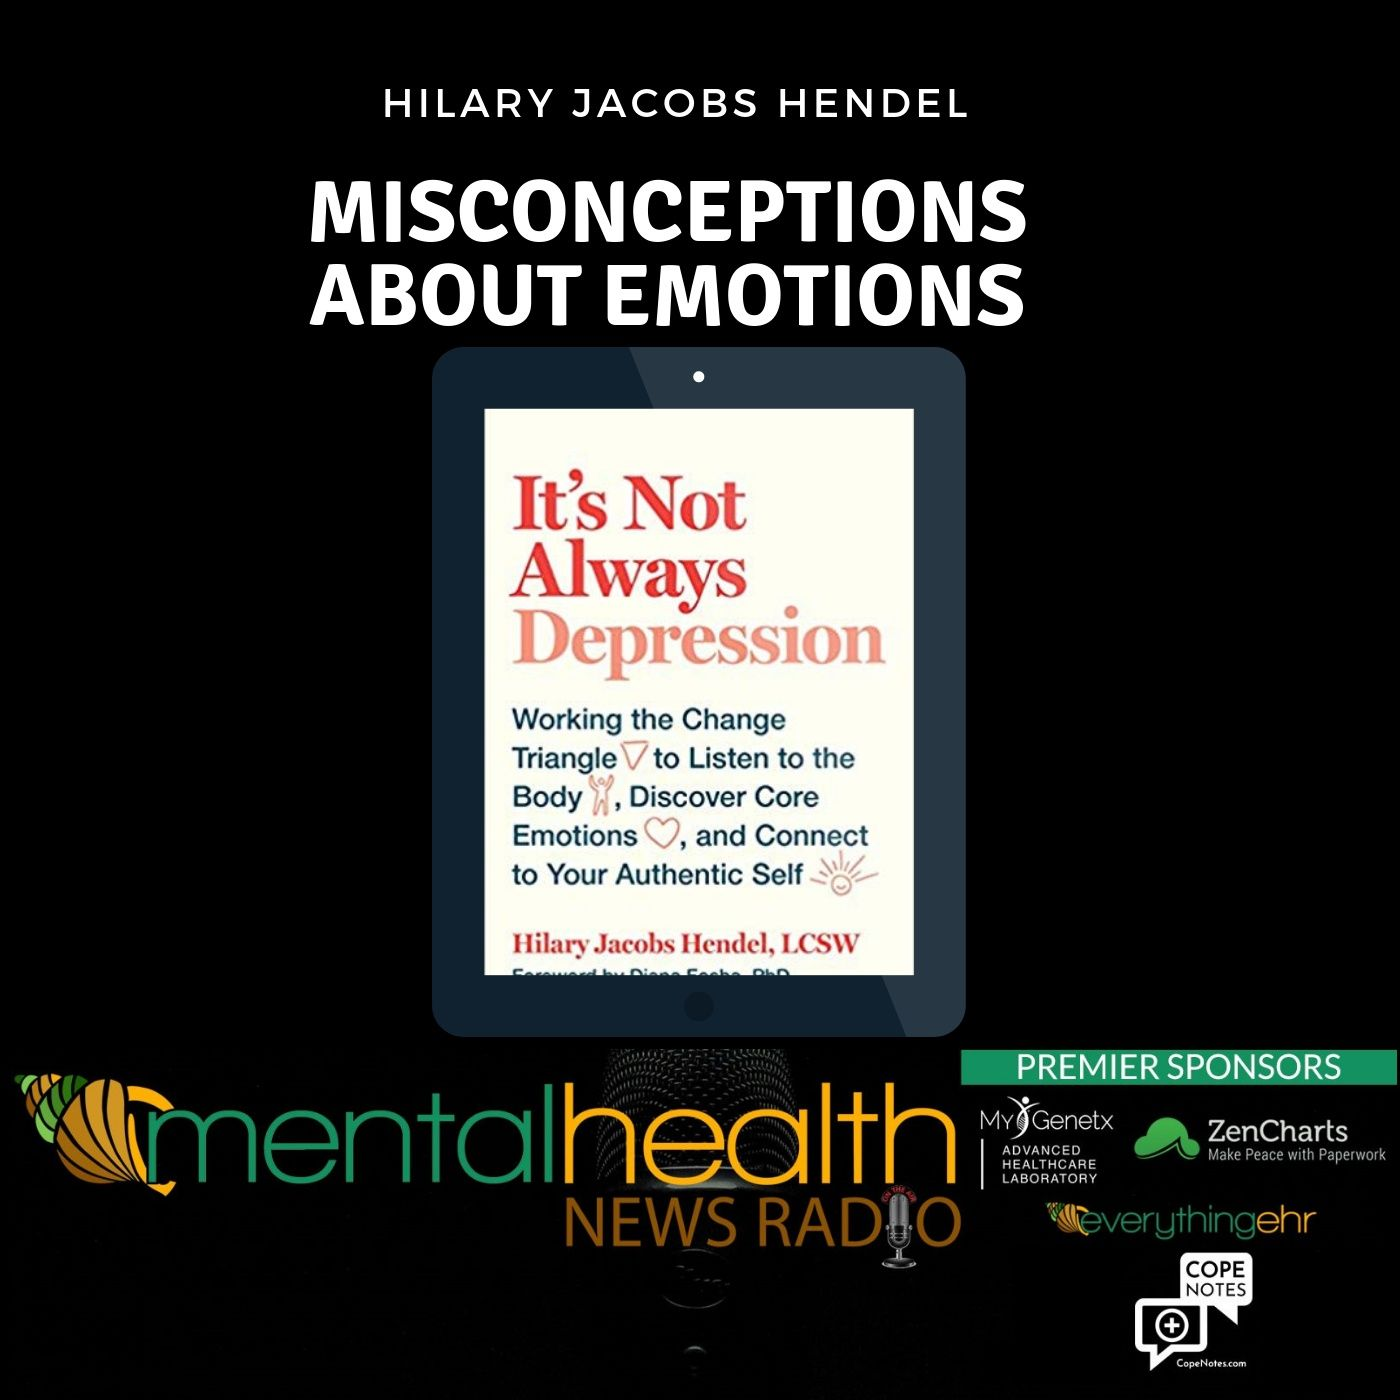 Mental Health News Radio - Misconceptions About Emotions with Hilary Jacobs Hendel